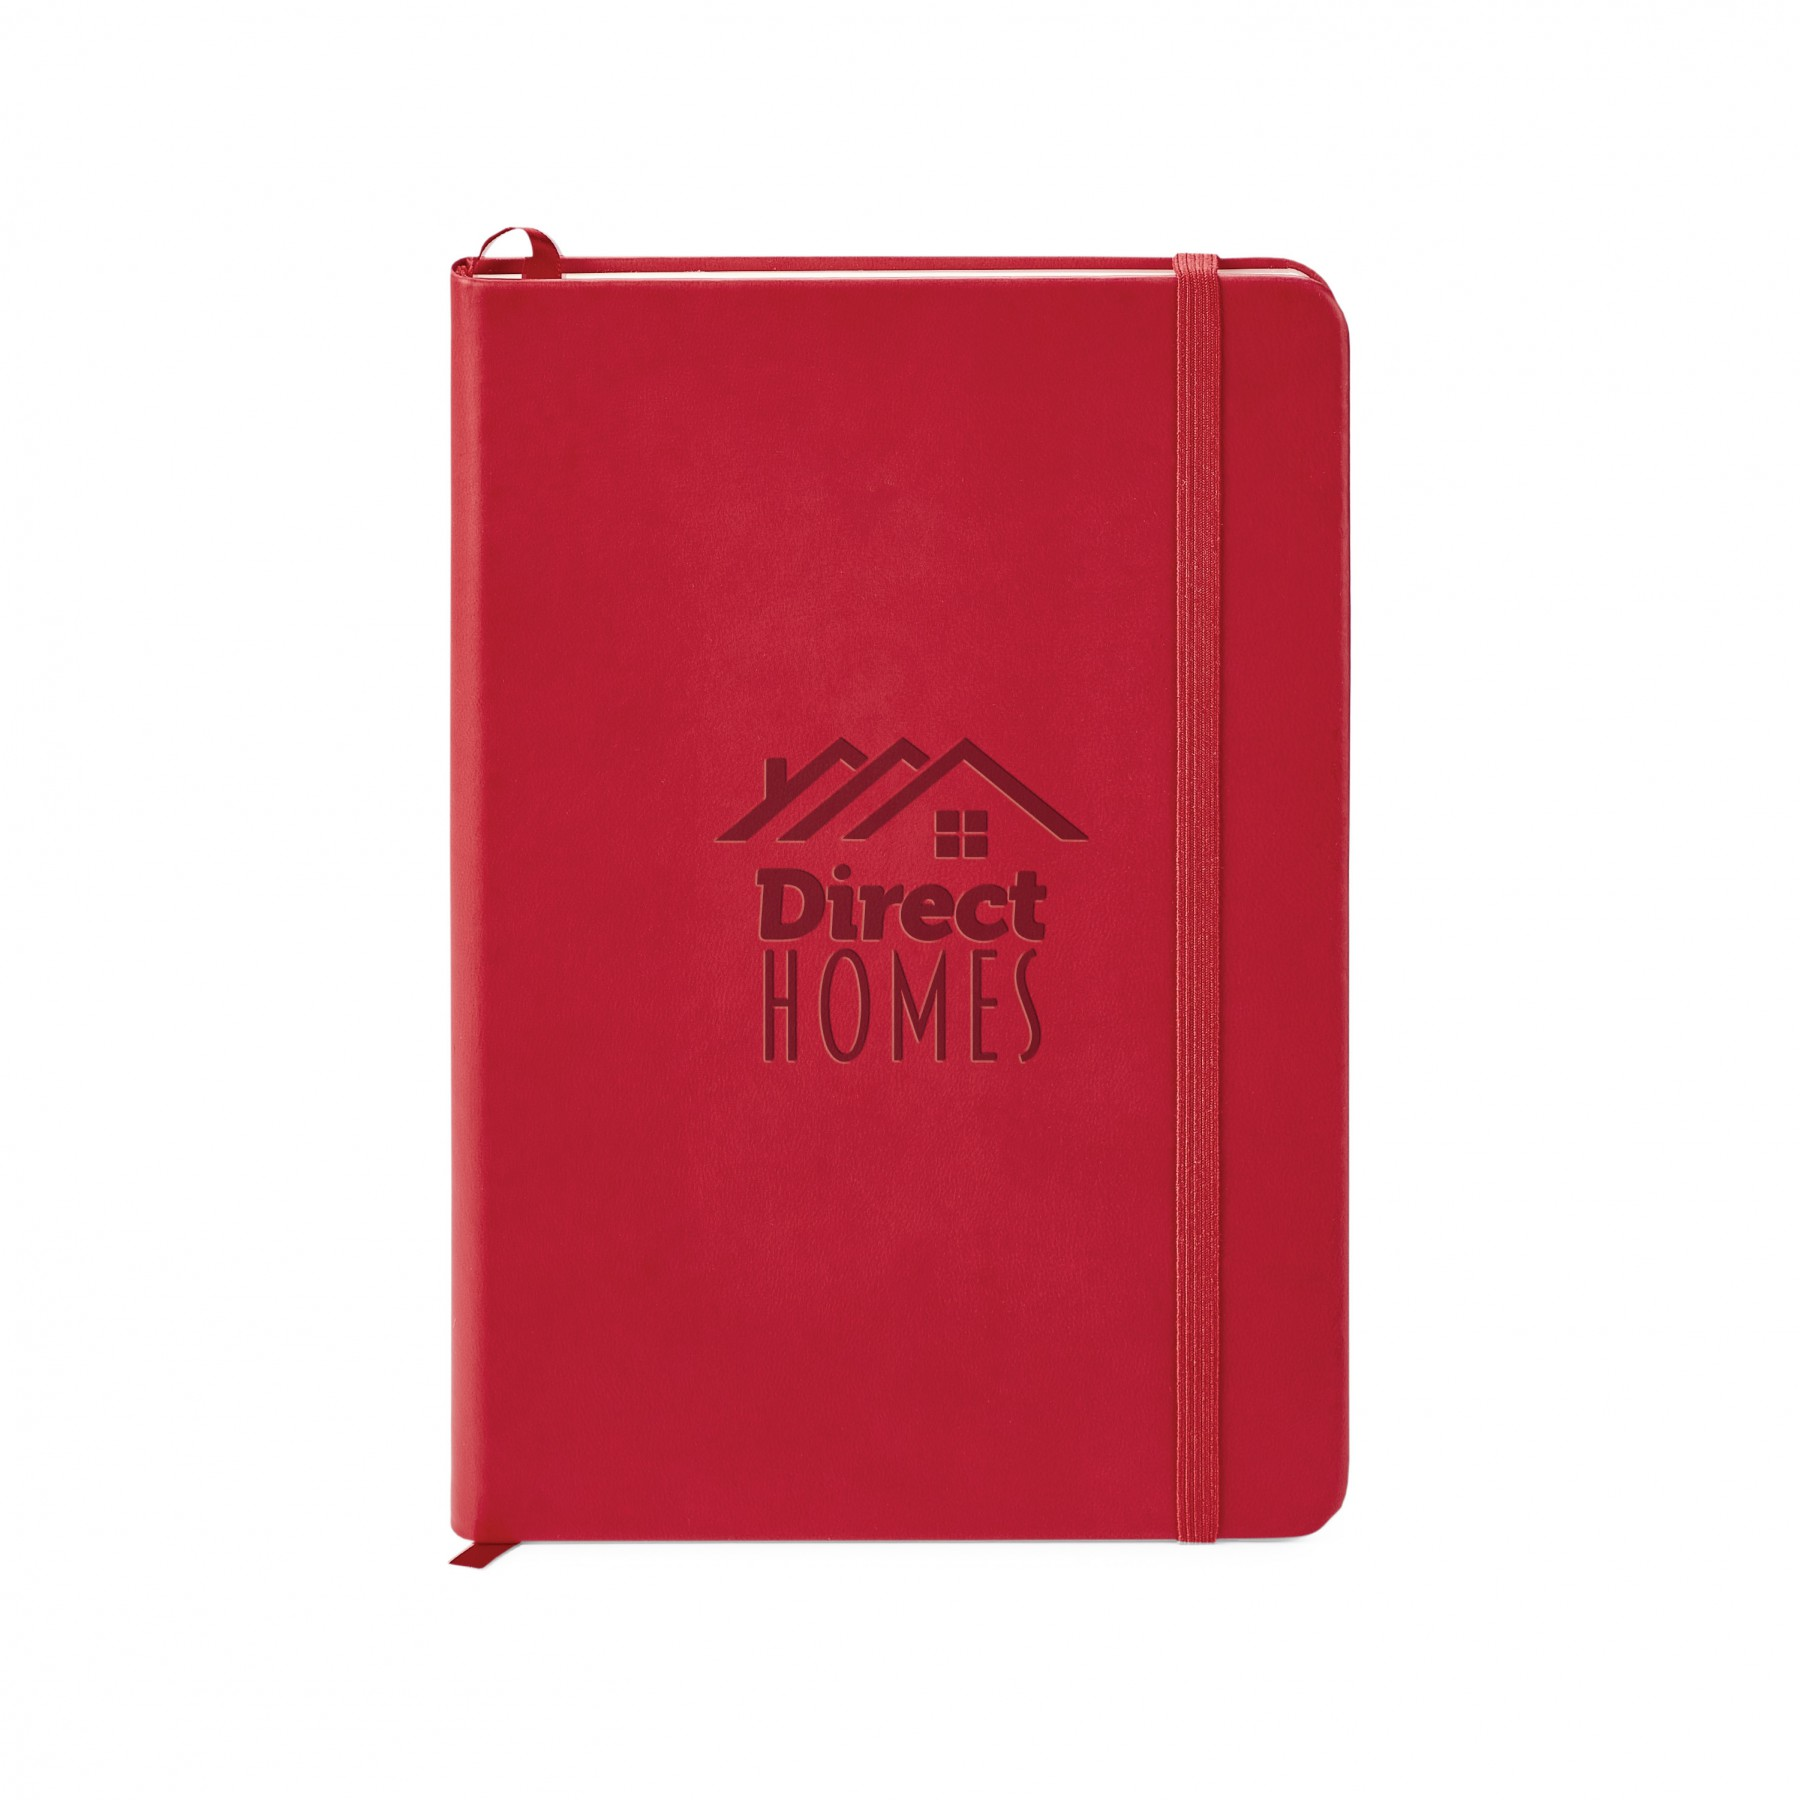 Donald Hard Cover Journal, ST4177, Debossed Logo